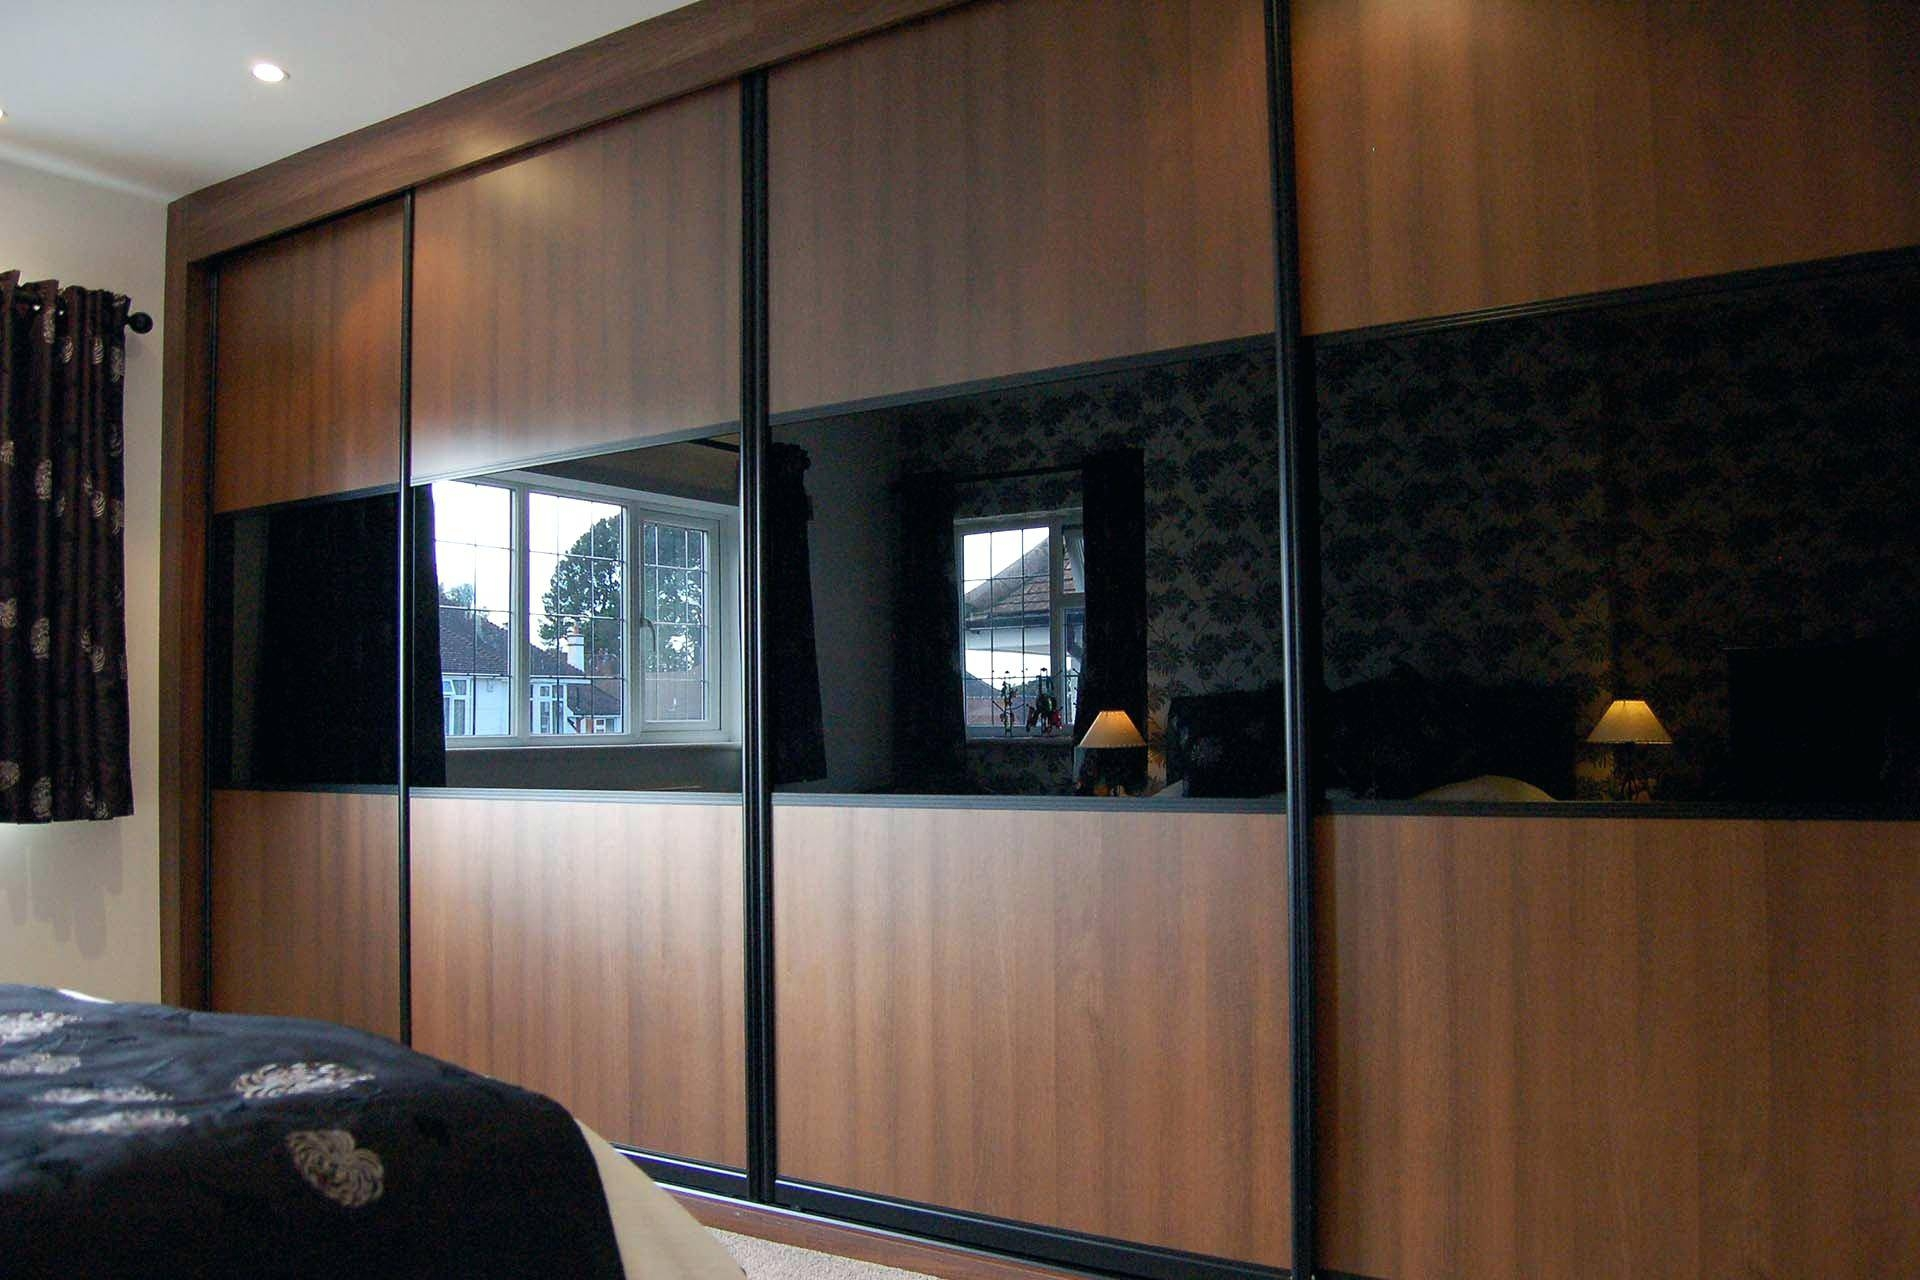 Mirror Fitted Wardrobes – Amlvideo in Dark Wood Wardrobe With Mirror (Image 23 of 30)